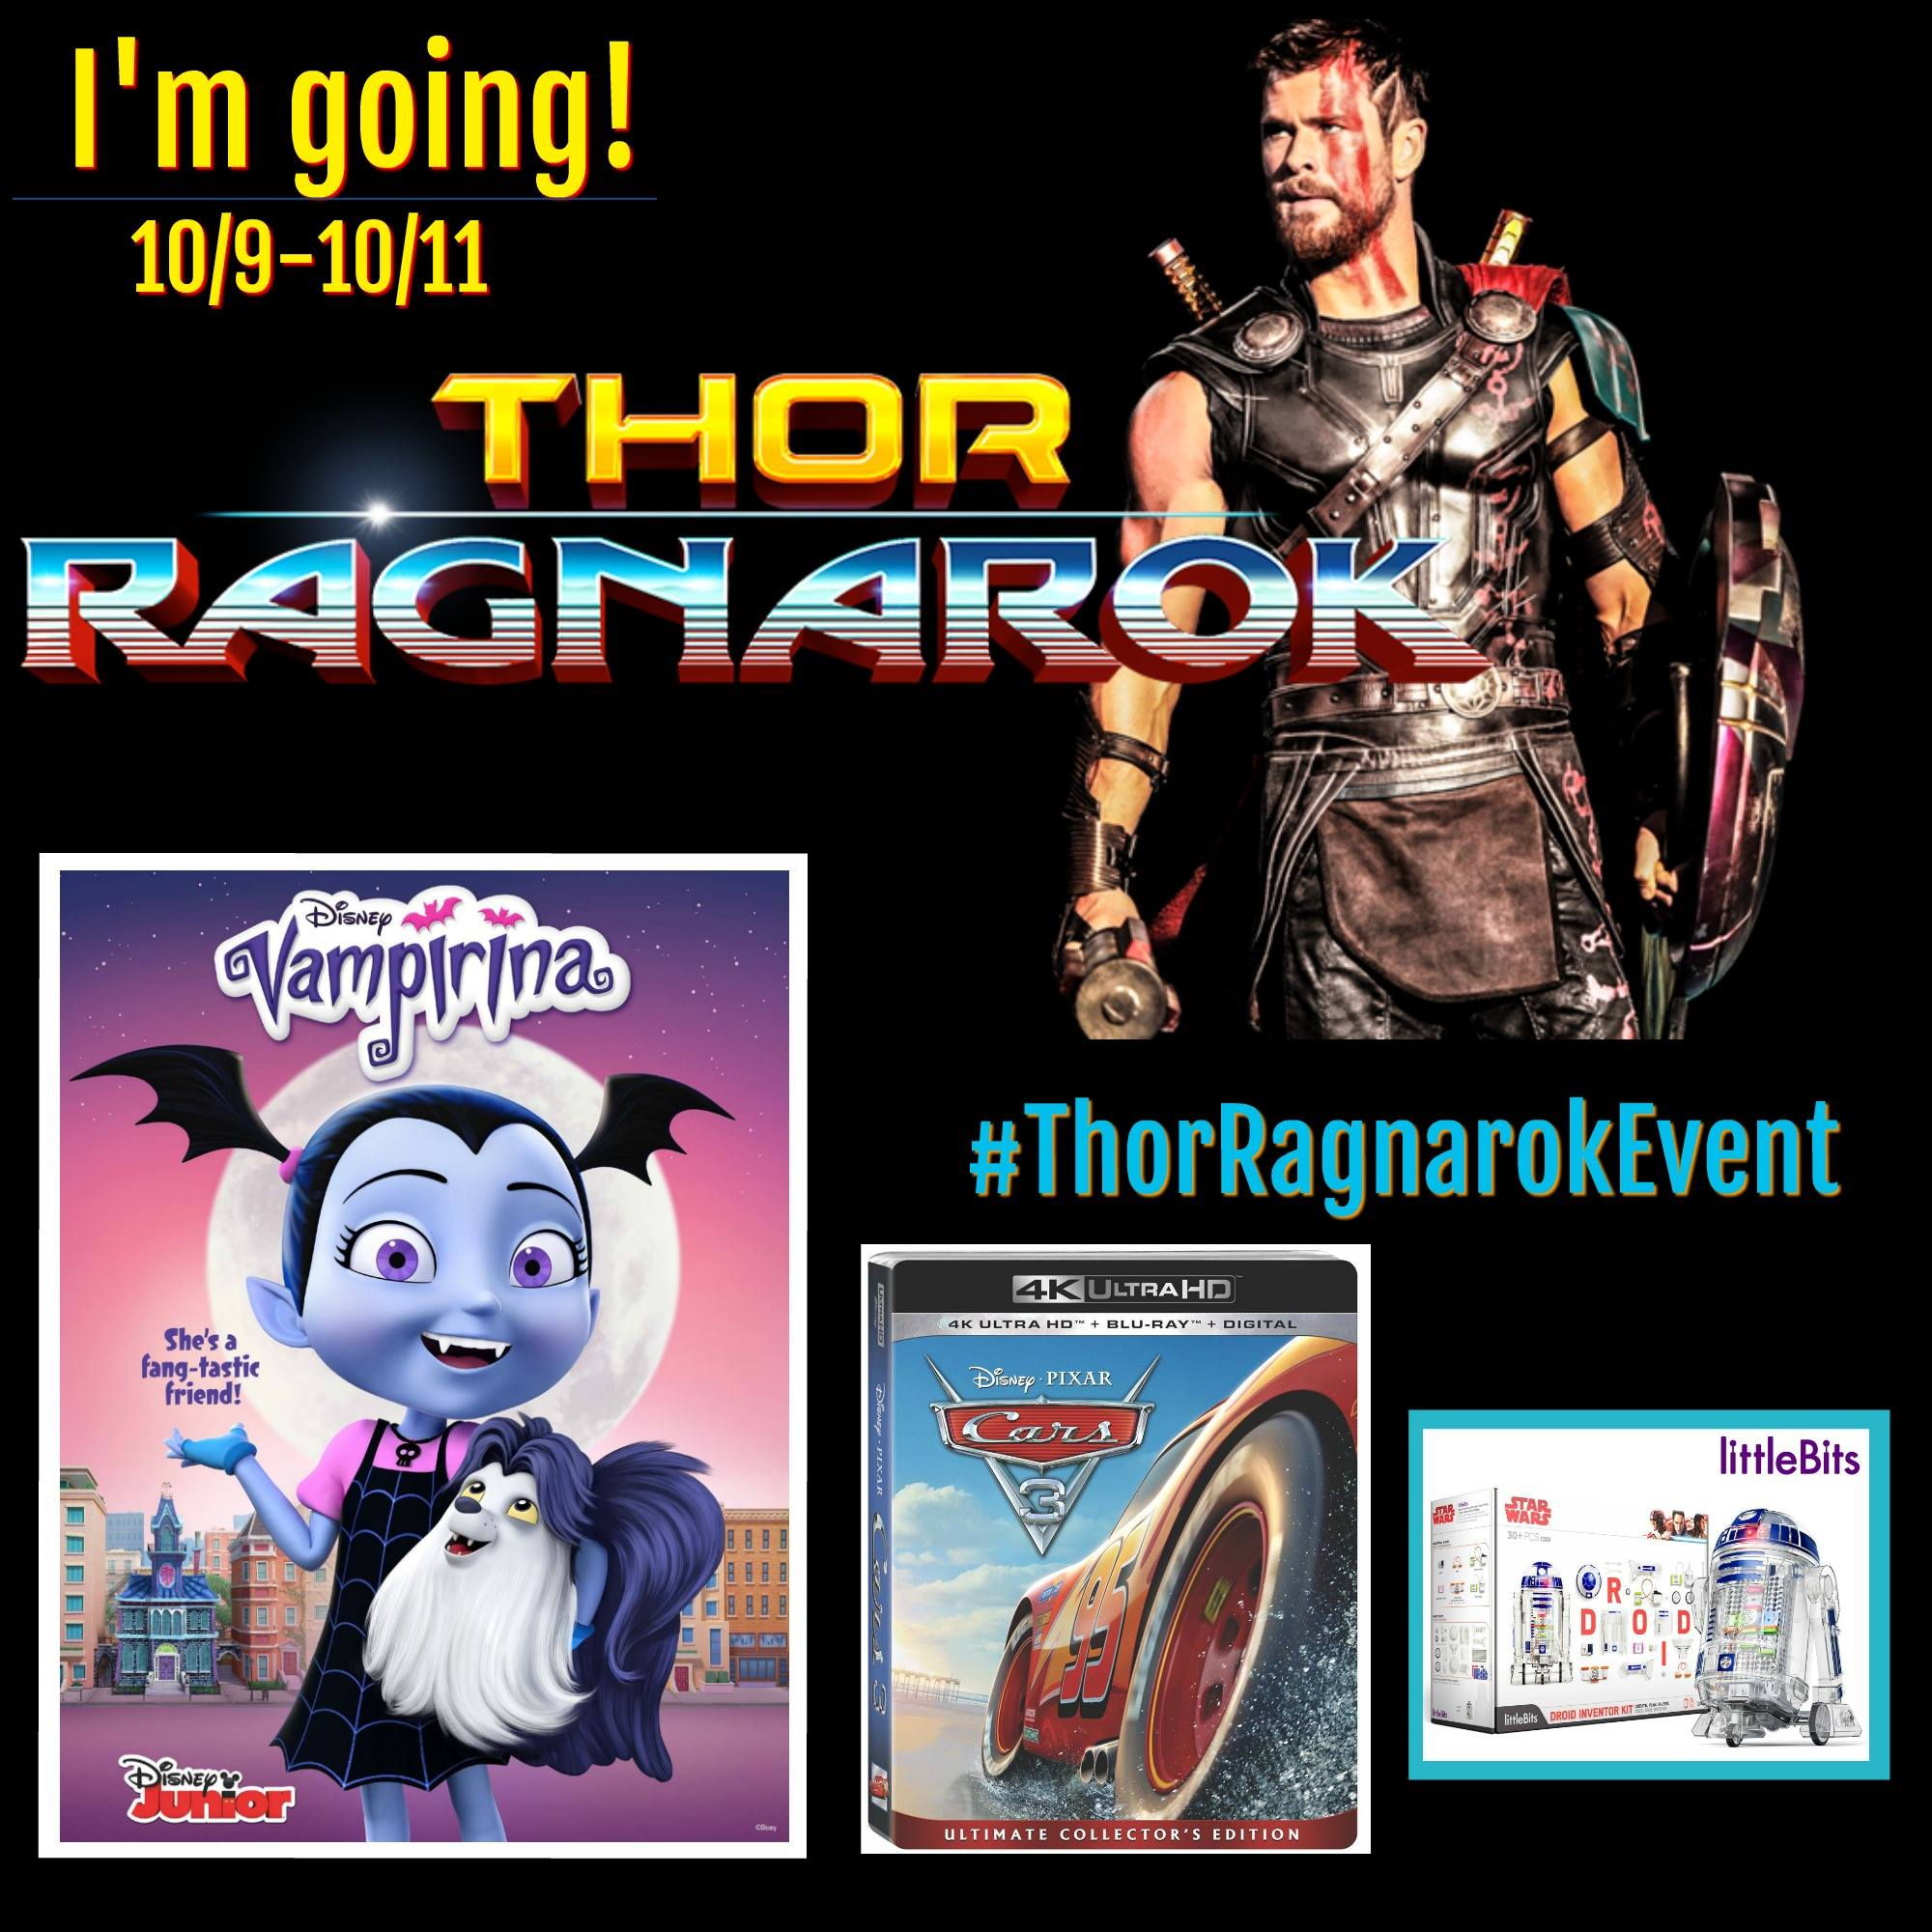 im-going-to-the-thor-ragnarok-movie-premiere-poster